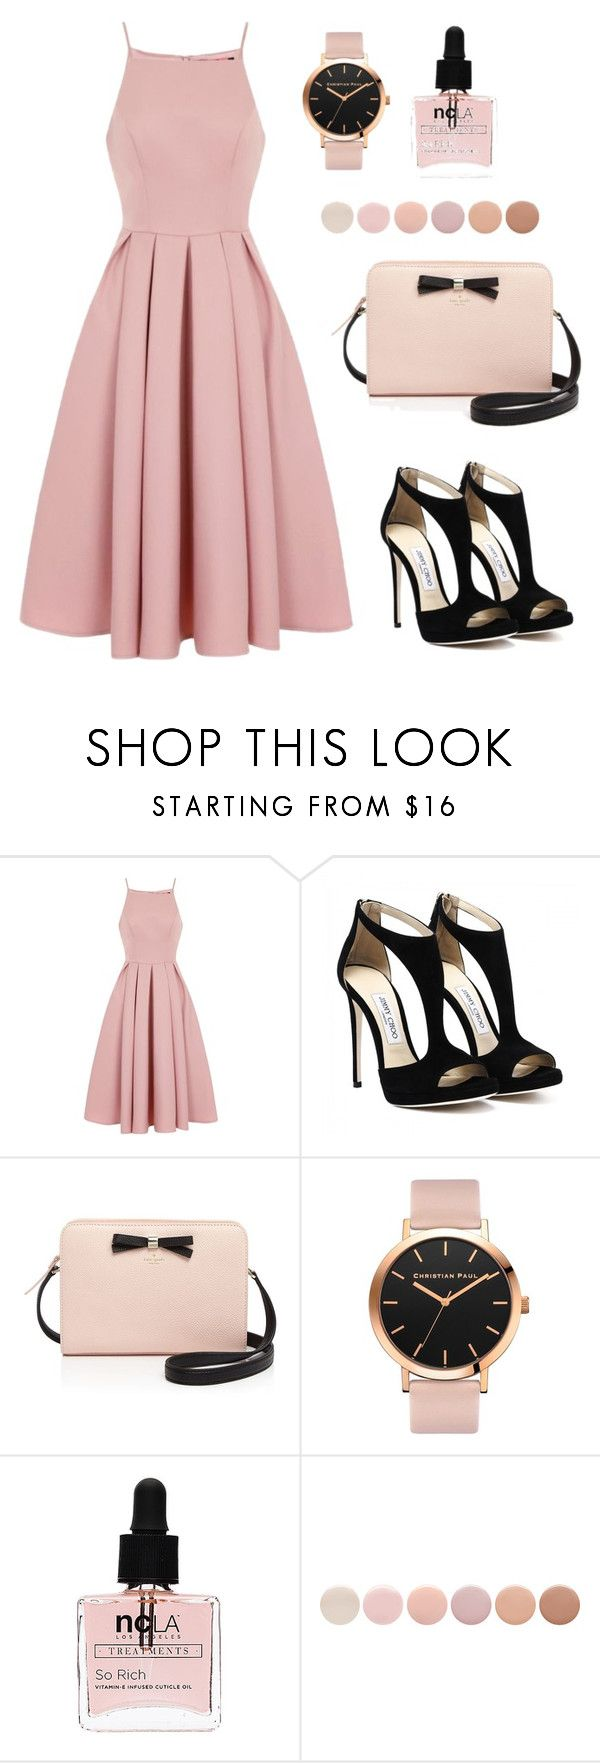 """#53 Casually Lovely"" by jocelynleebold ❤ liked on Polyvore featuring Chi Chi, Kate Spade, ncLA and Deborah Lippmann"